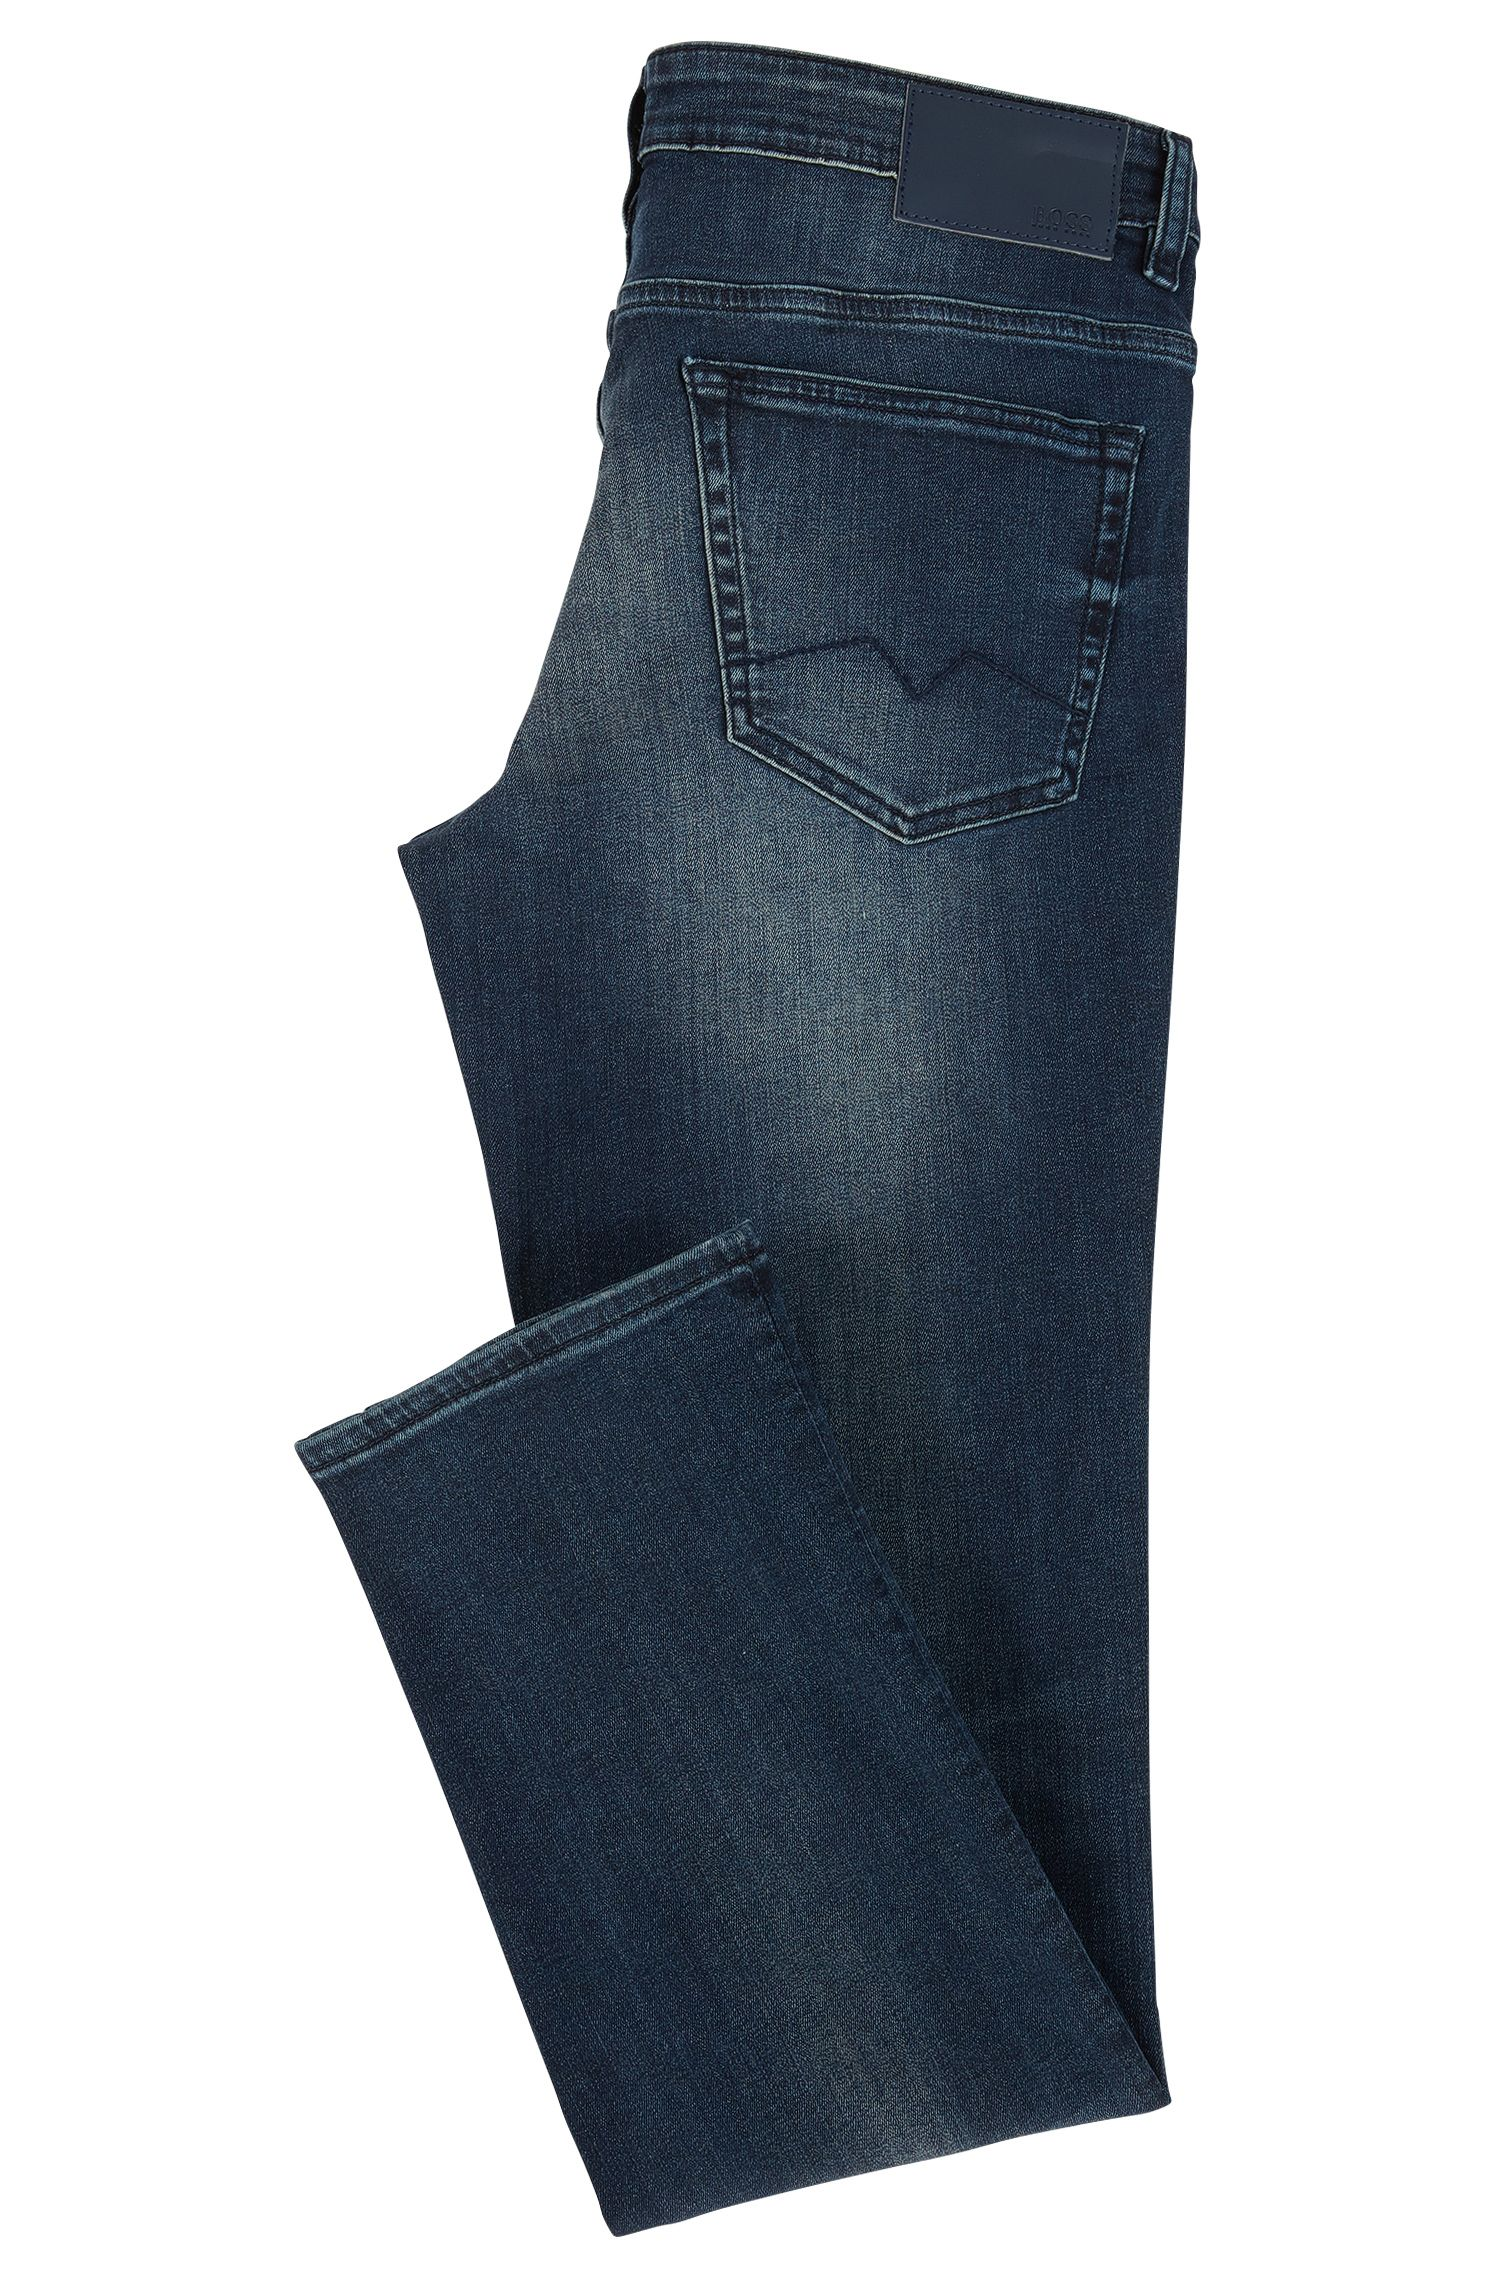 Jean Slim Fit en denim stretch bleu foncé